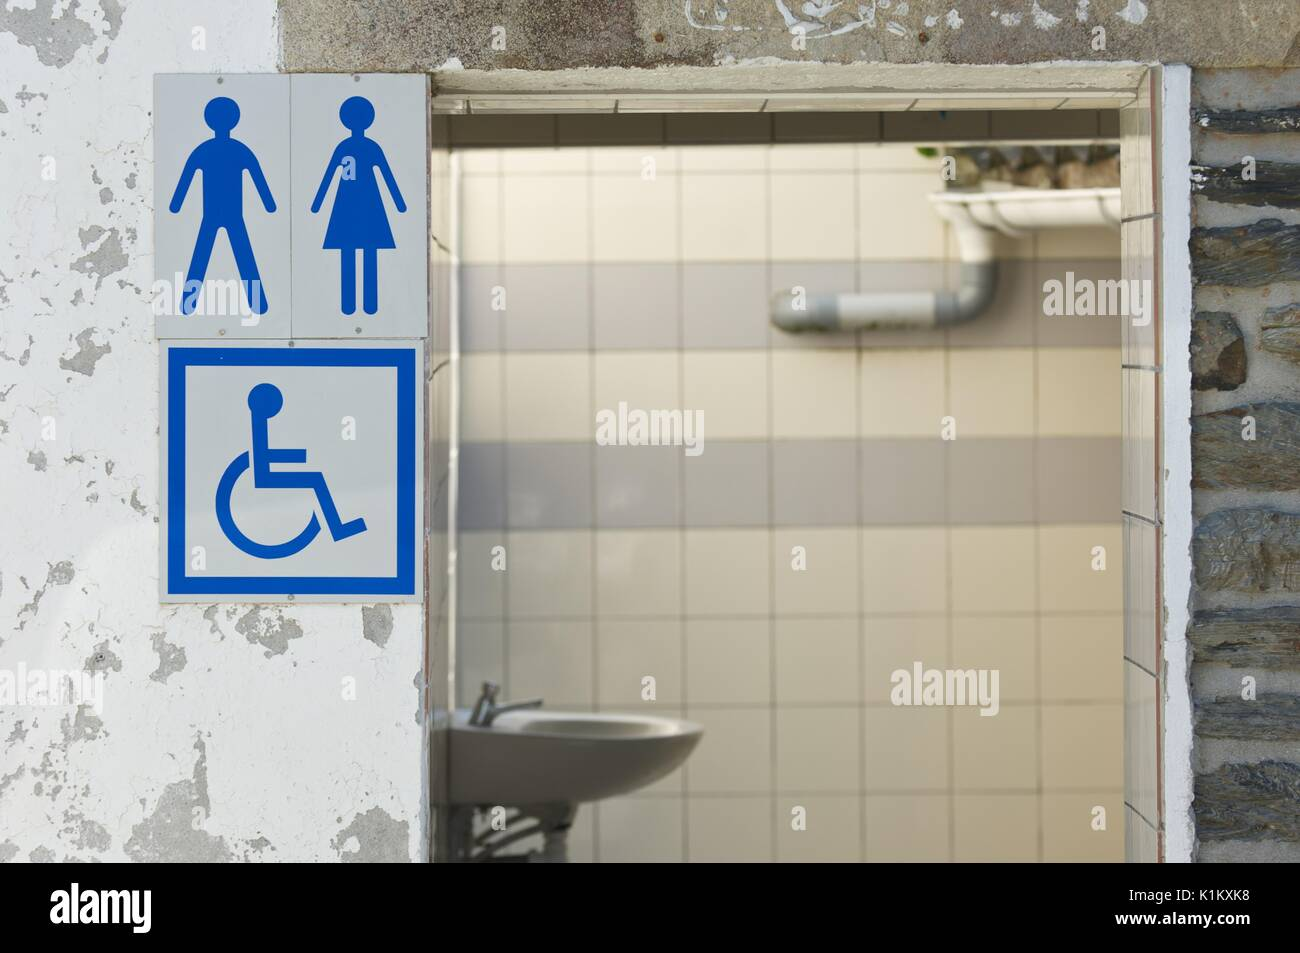 Unisex public toilets with signage in France - Stock Image